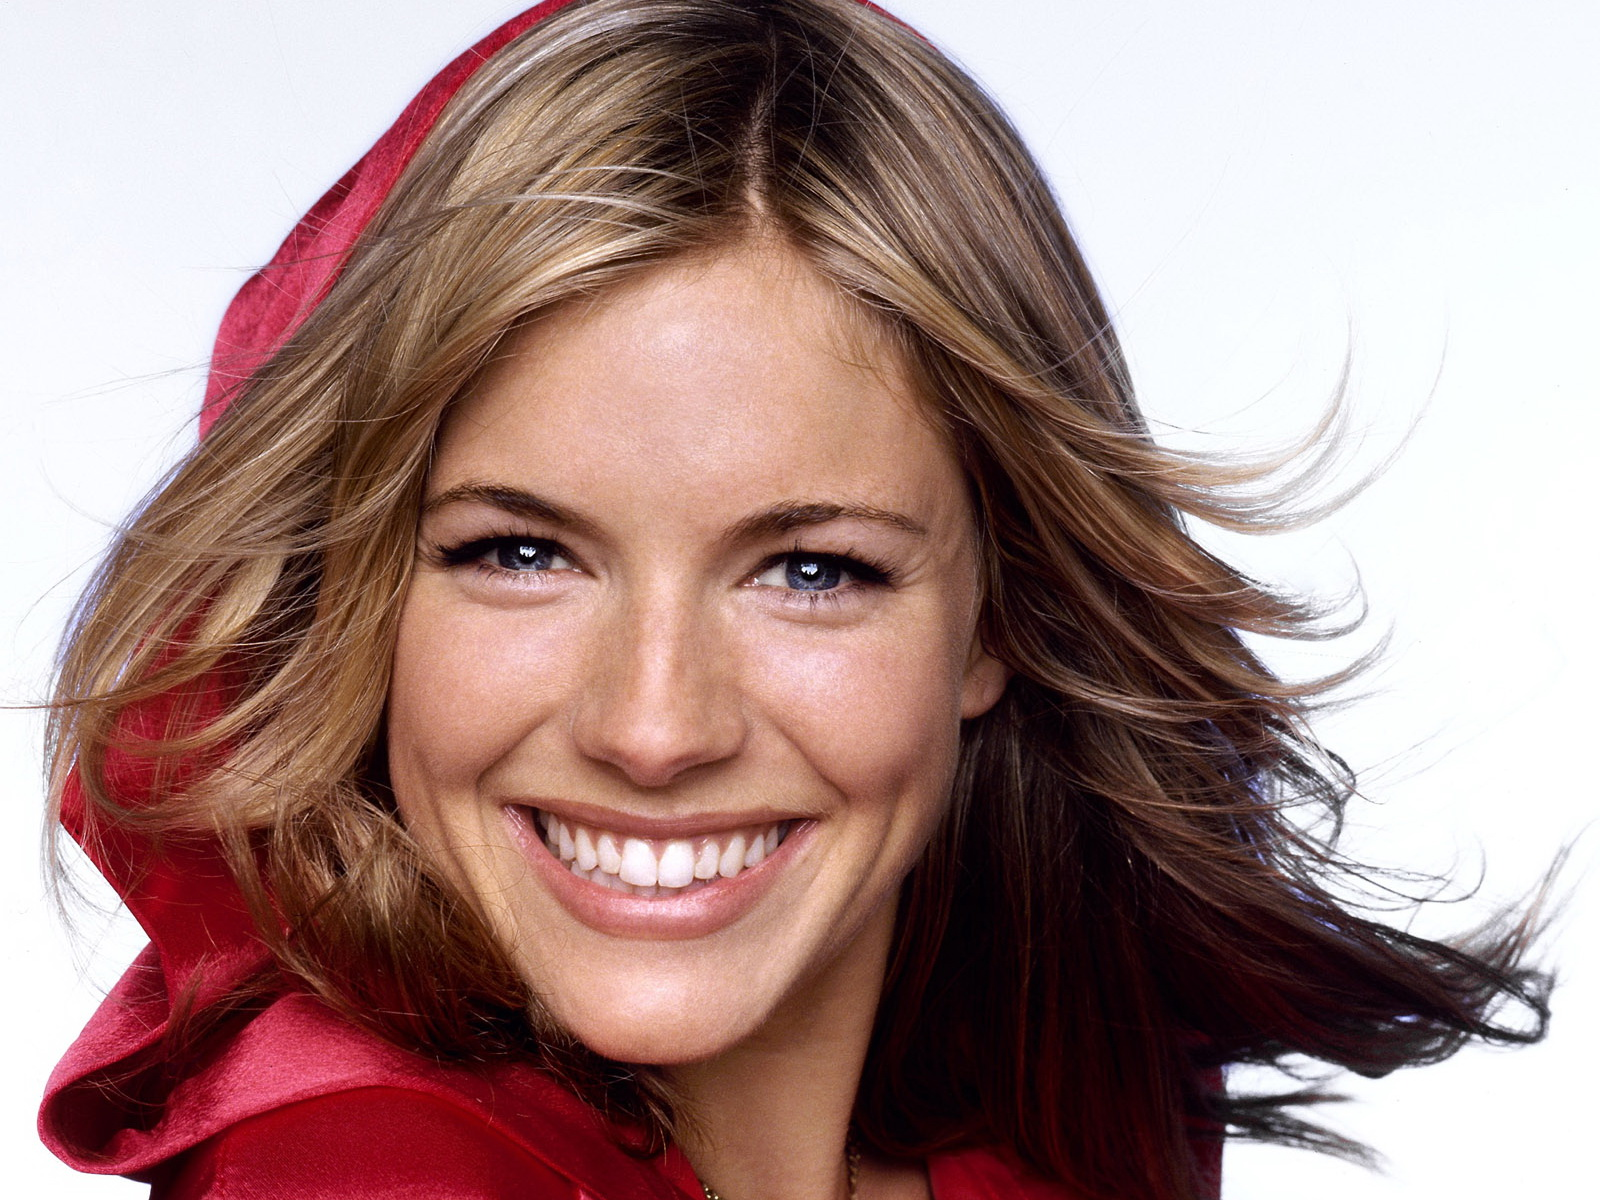 Sienna Miller (born 1981 (born in New York City Sienna Miller (born 1981 (born in New York City new images